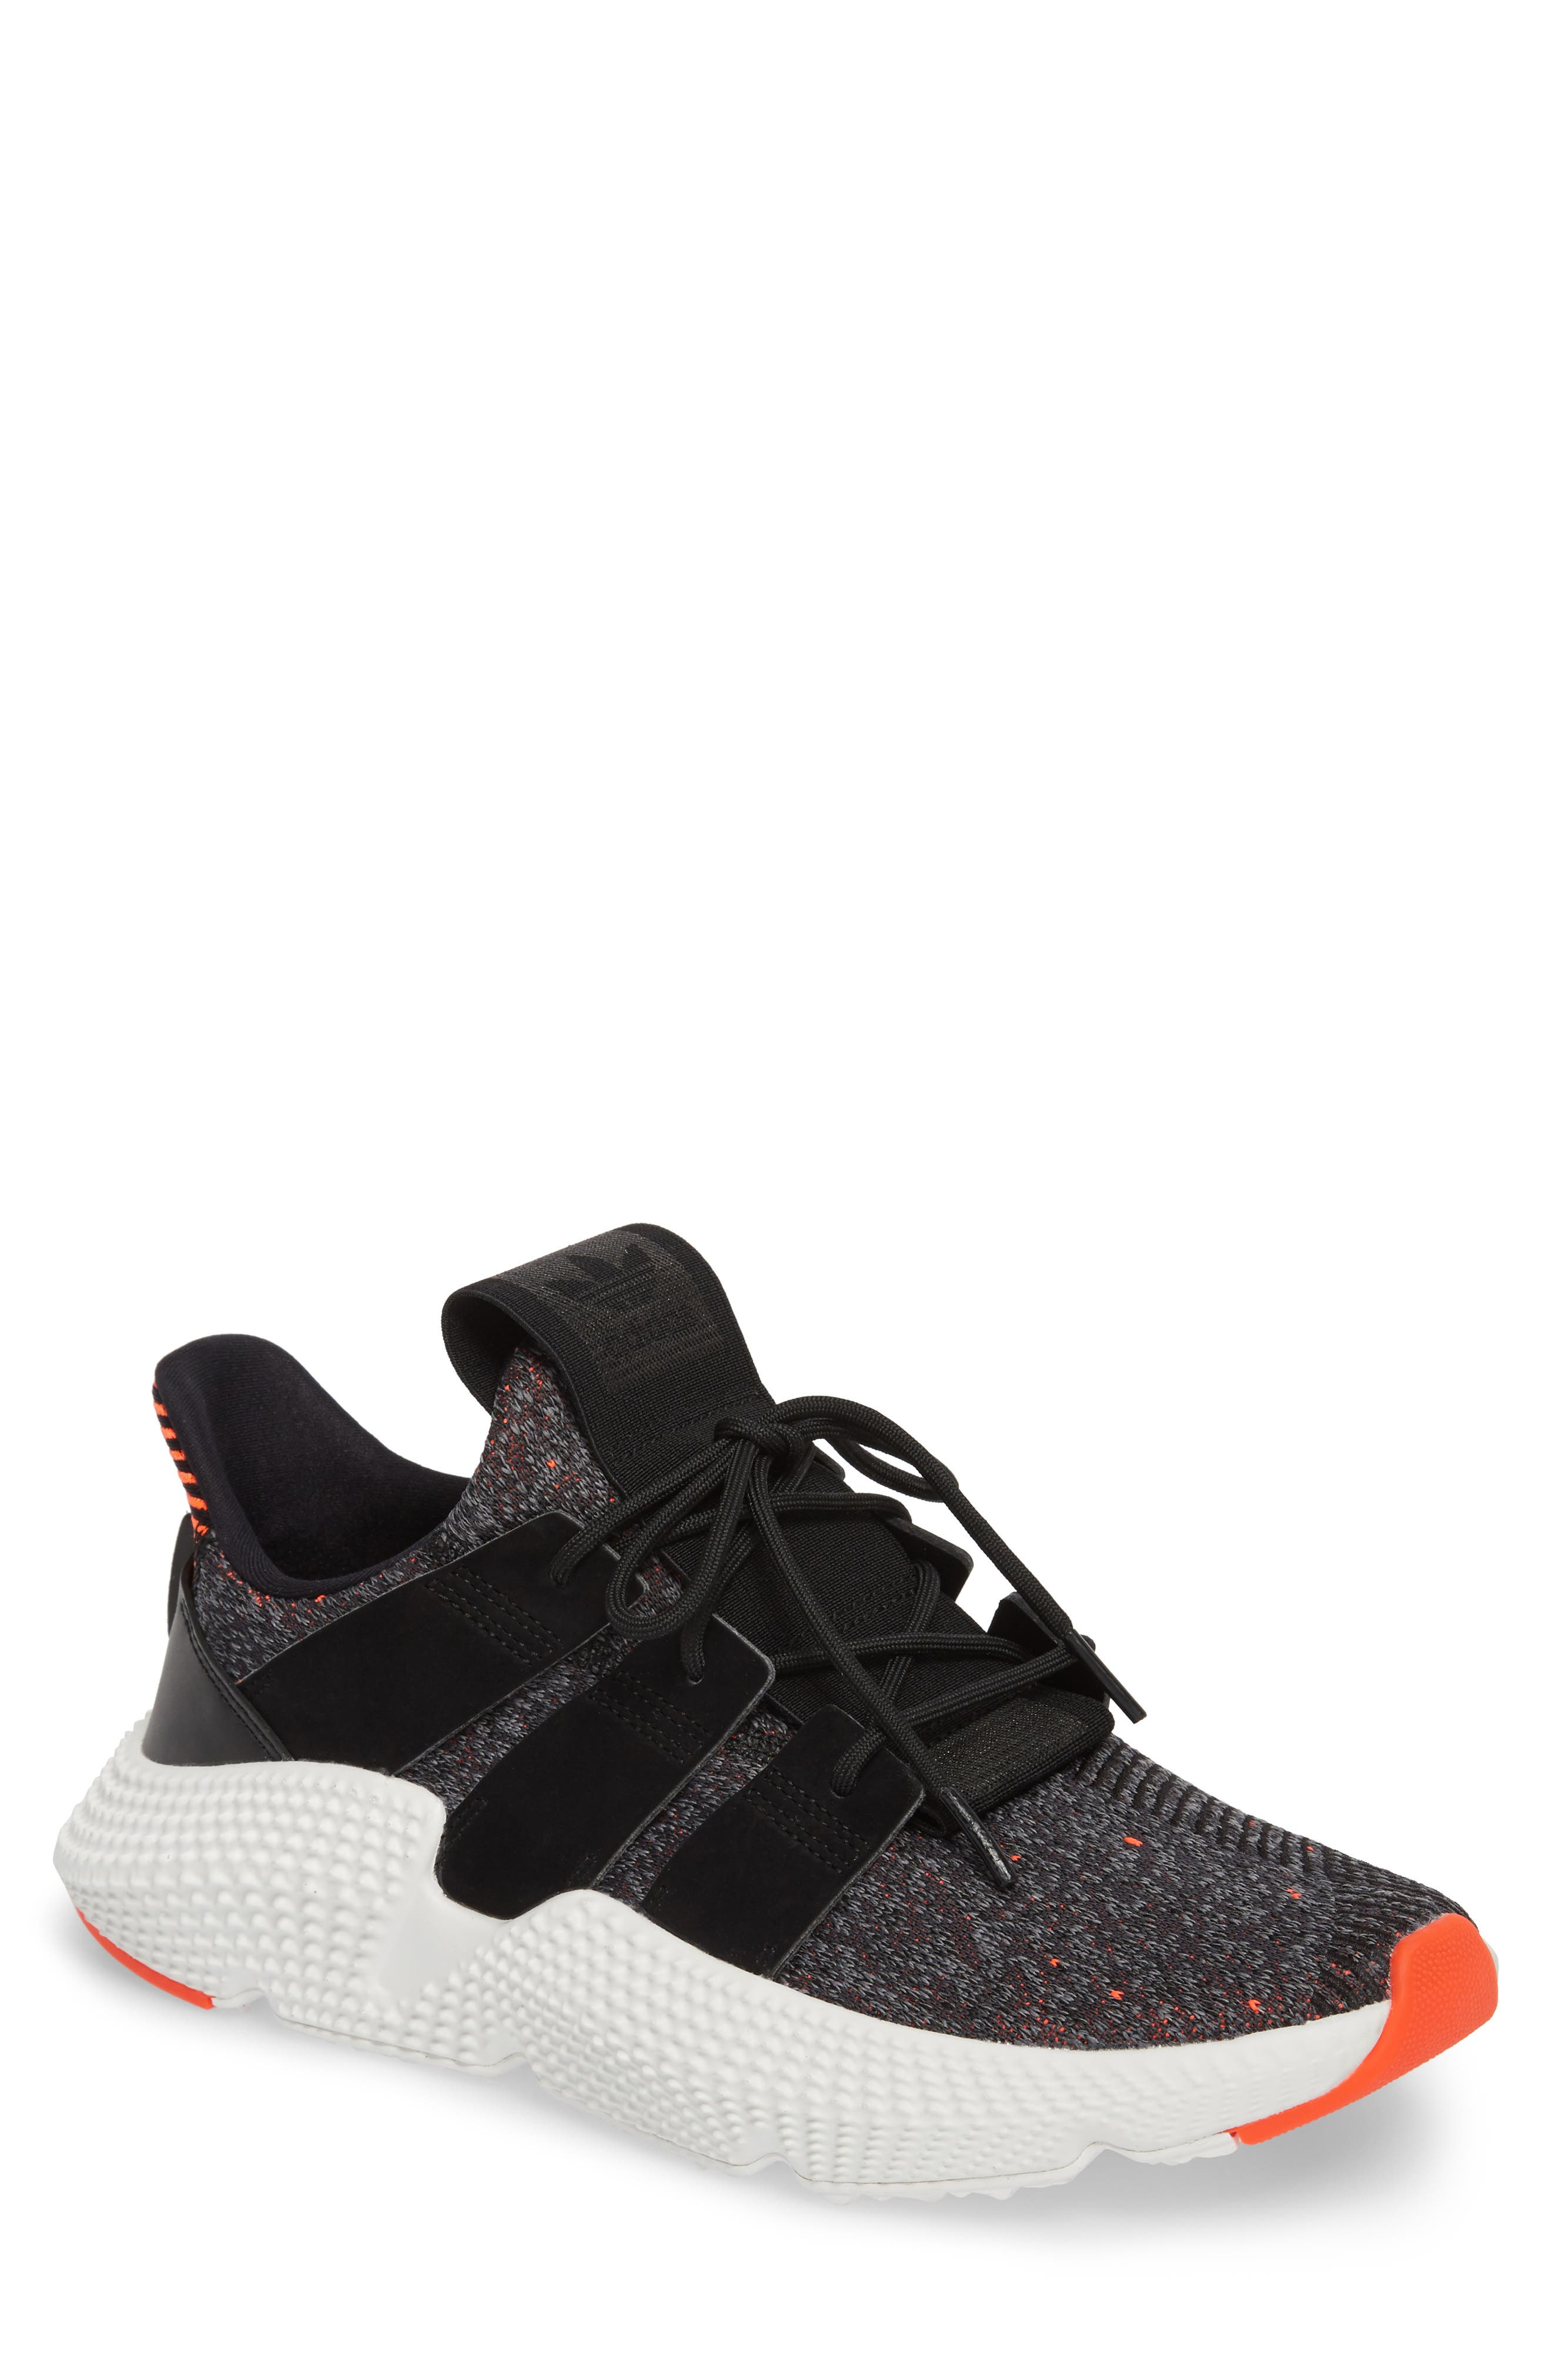 Prophere Sneaker,                         Main,                         color, Black/ Solar Red